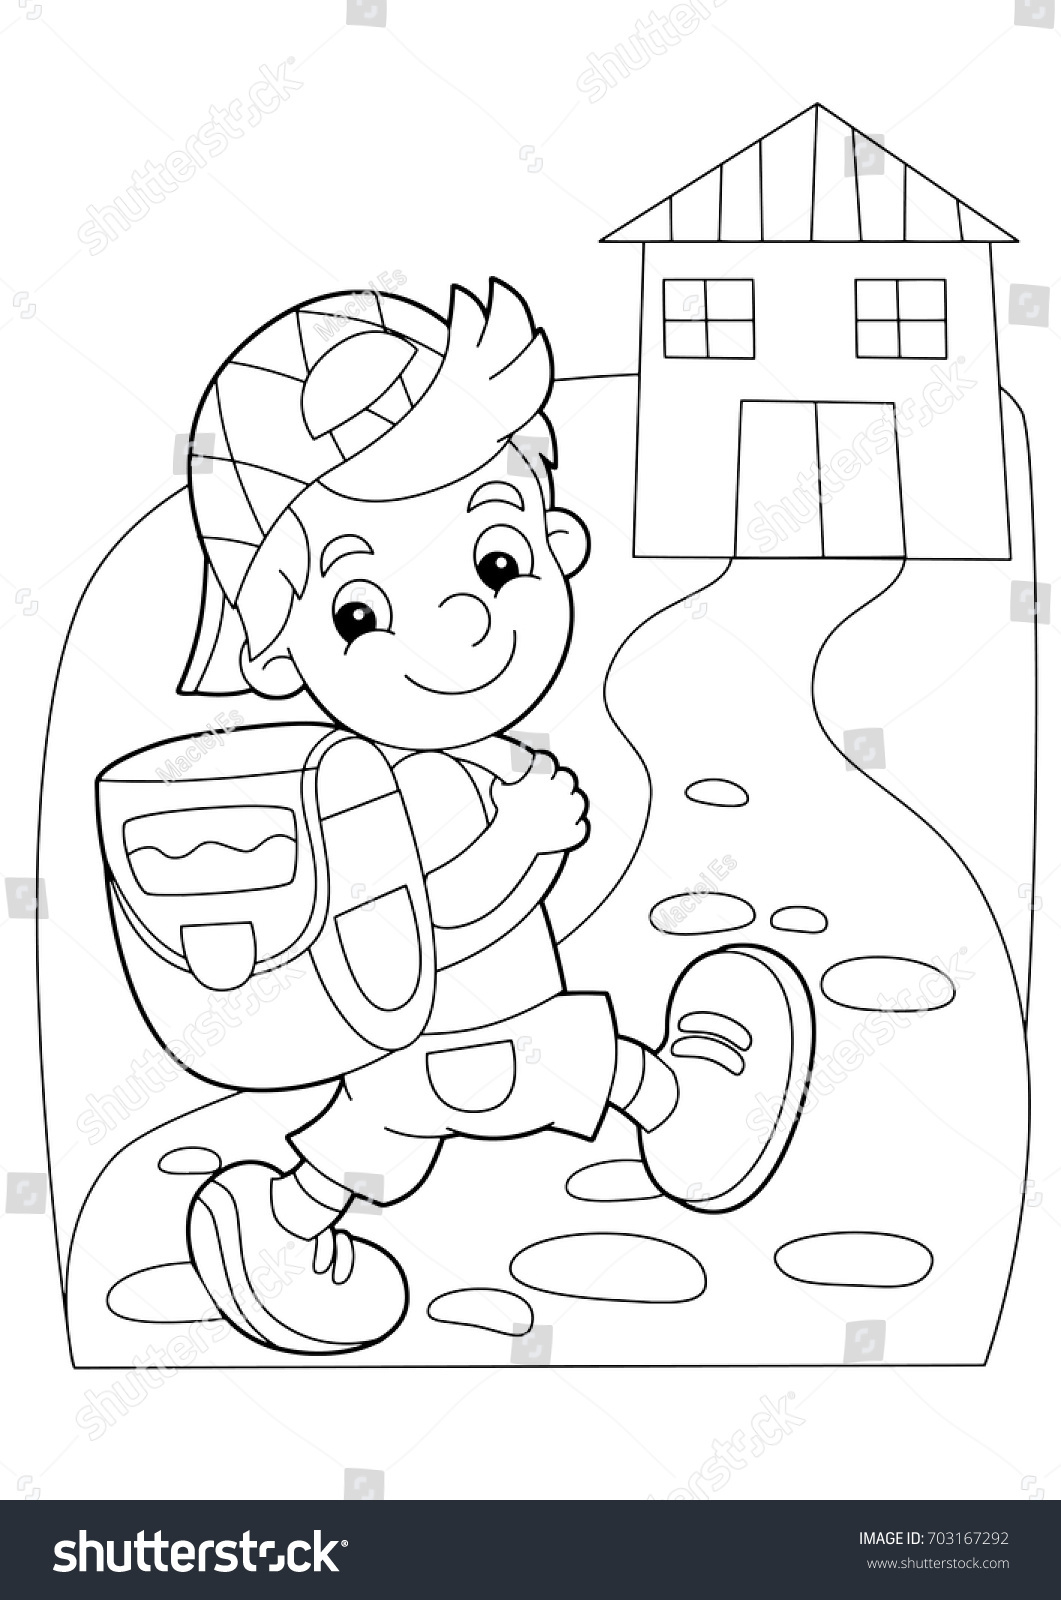 cartoon coloring page boy going to school or getting back to home illustration for - Home Coloring Pages